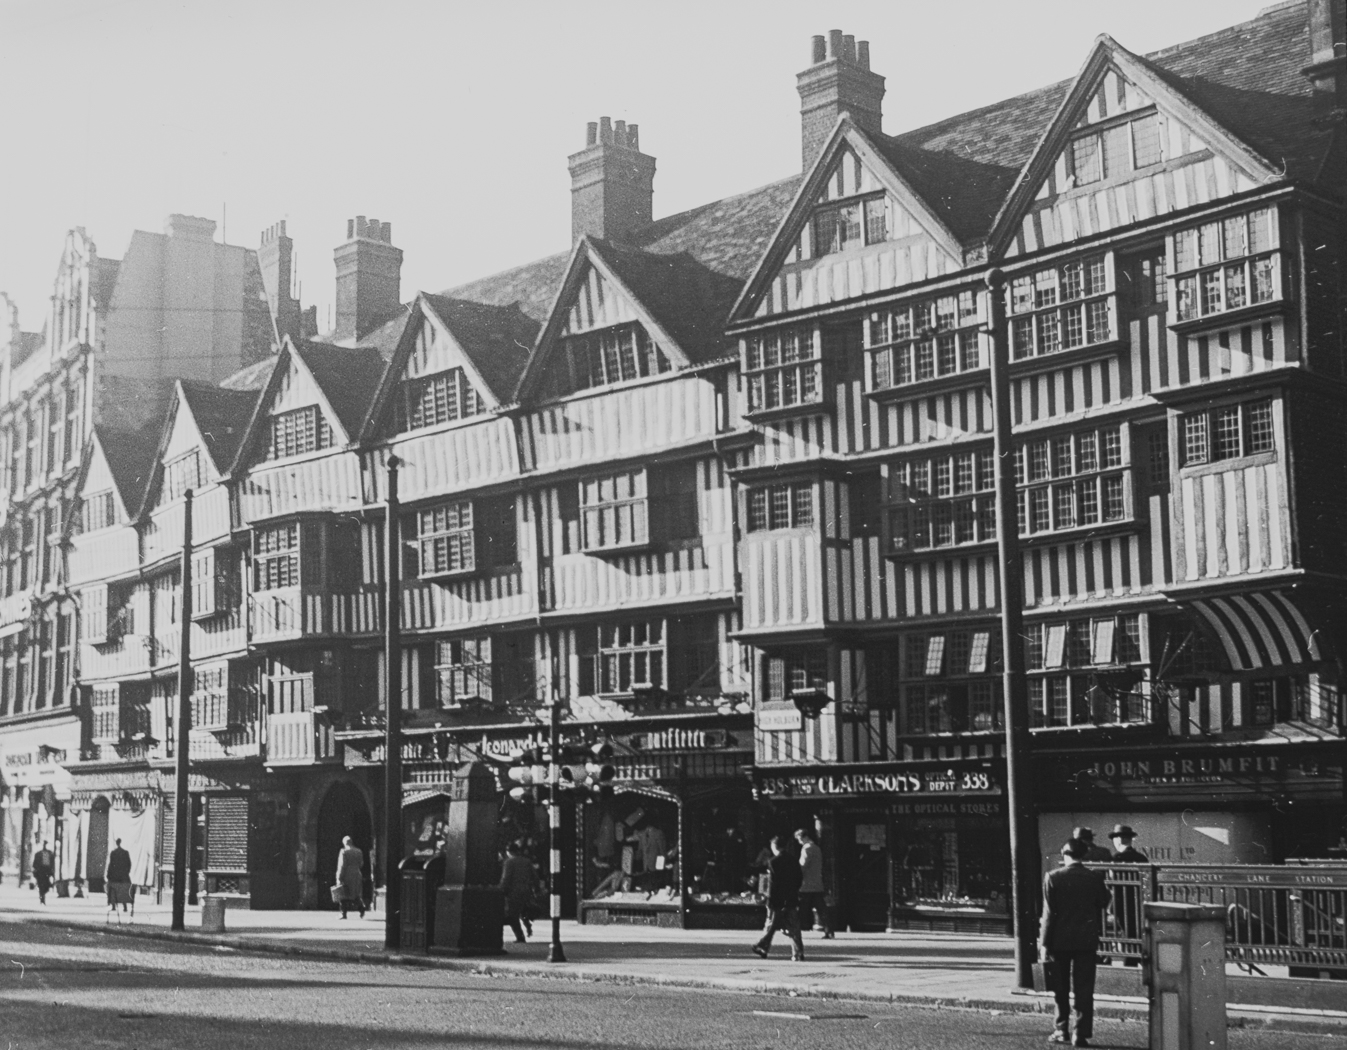 016_11 Staple Inn- Holborn